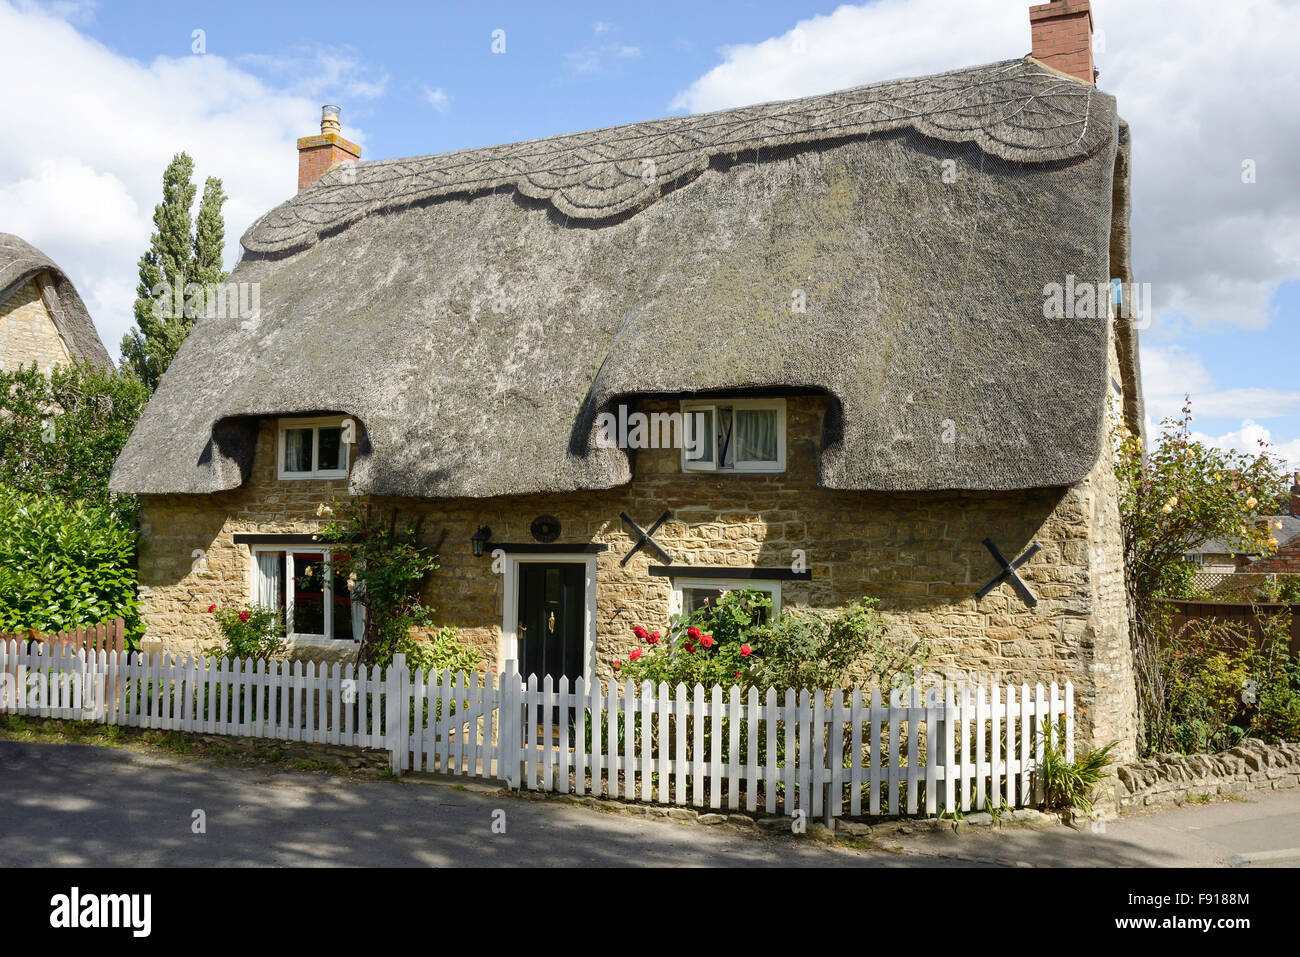 Thatched cottage, Bridge Road, Stoke Bruerne, Northamptonshire, England, United Kingdom - Stock Image